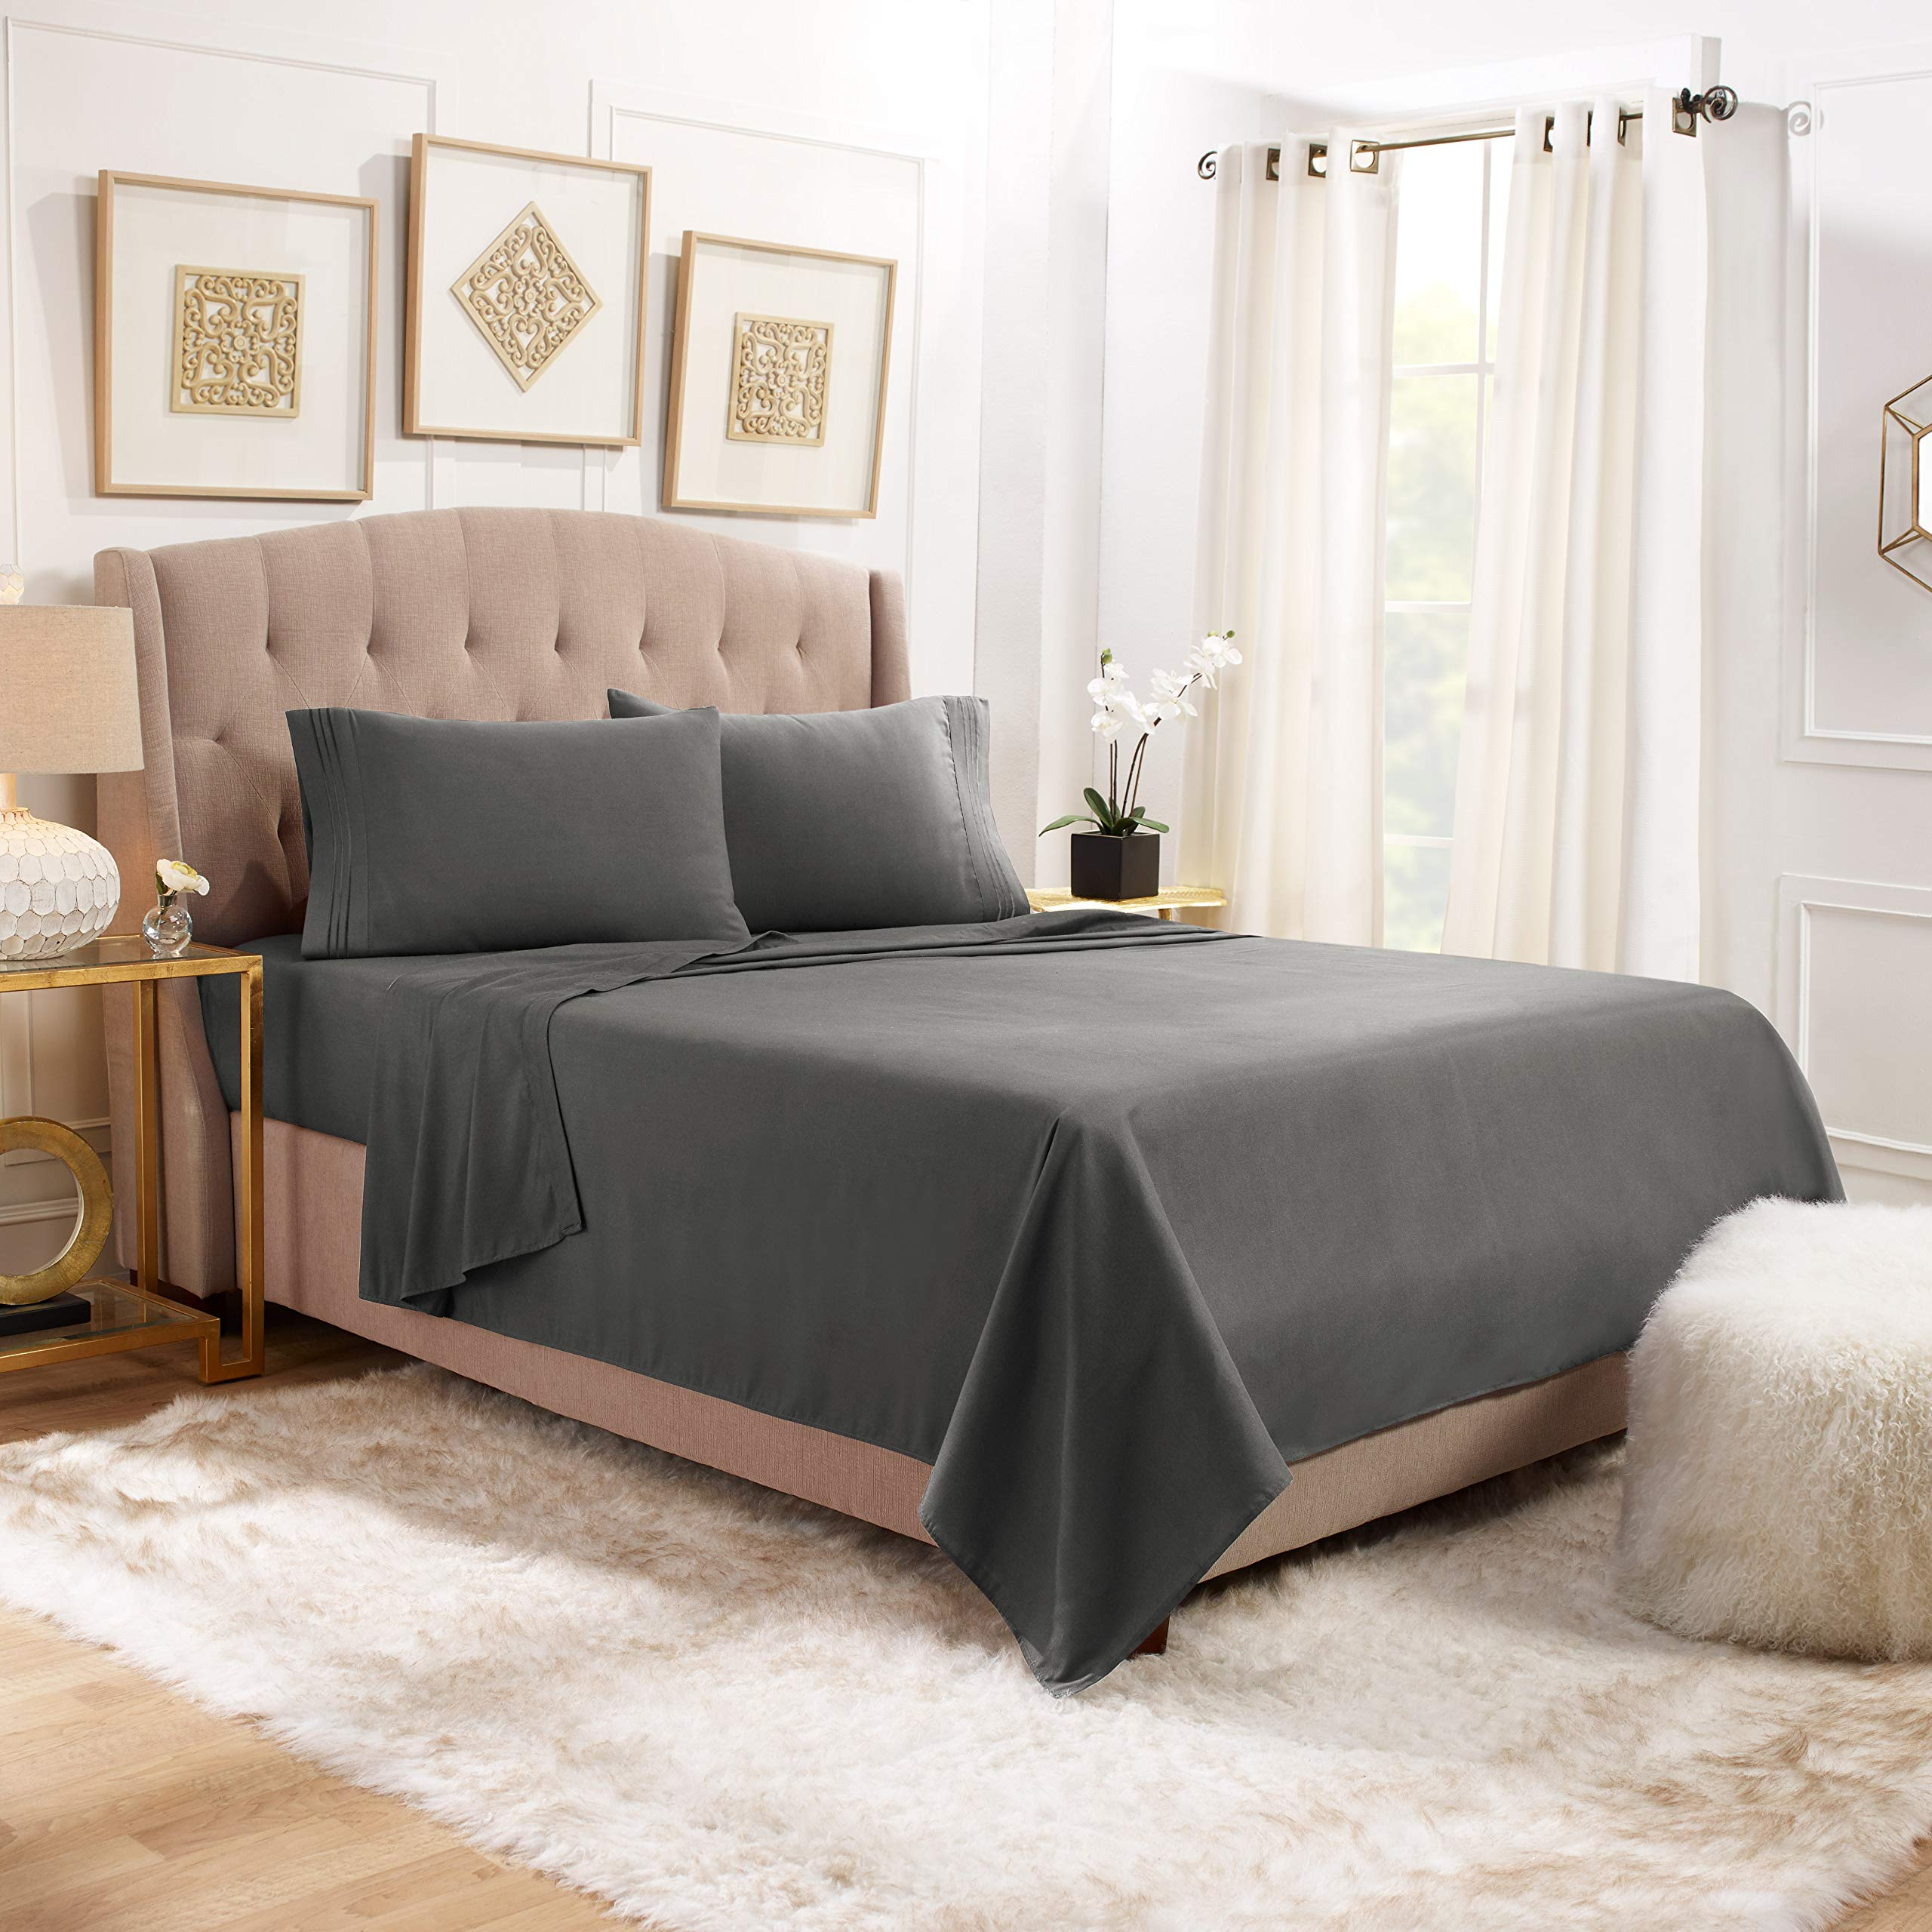 """Empyrean Bedding 14"""" - 16"""" Deep Pocket Fitted Sheet 4 Piece Set - Hotel Luxury Soft Double Brushed Microfiber Top Sheet - Wrinkle Free Fitted Bed Sheet, Flat Sheet and 2 Pillow Cases - Full, Gray"""